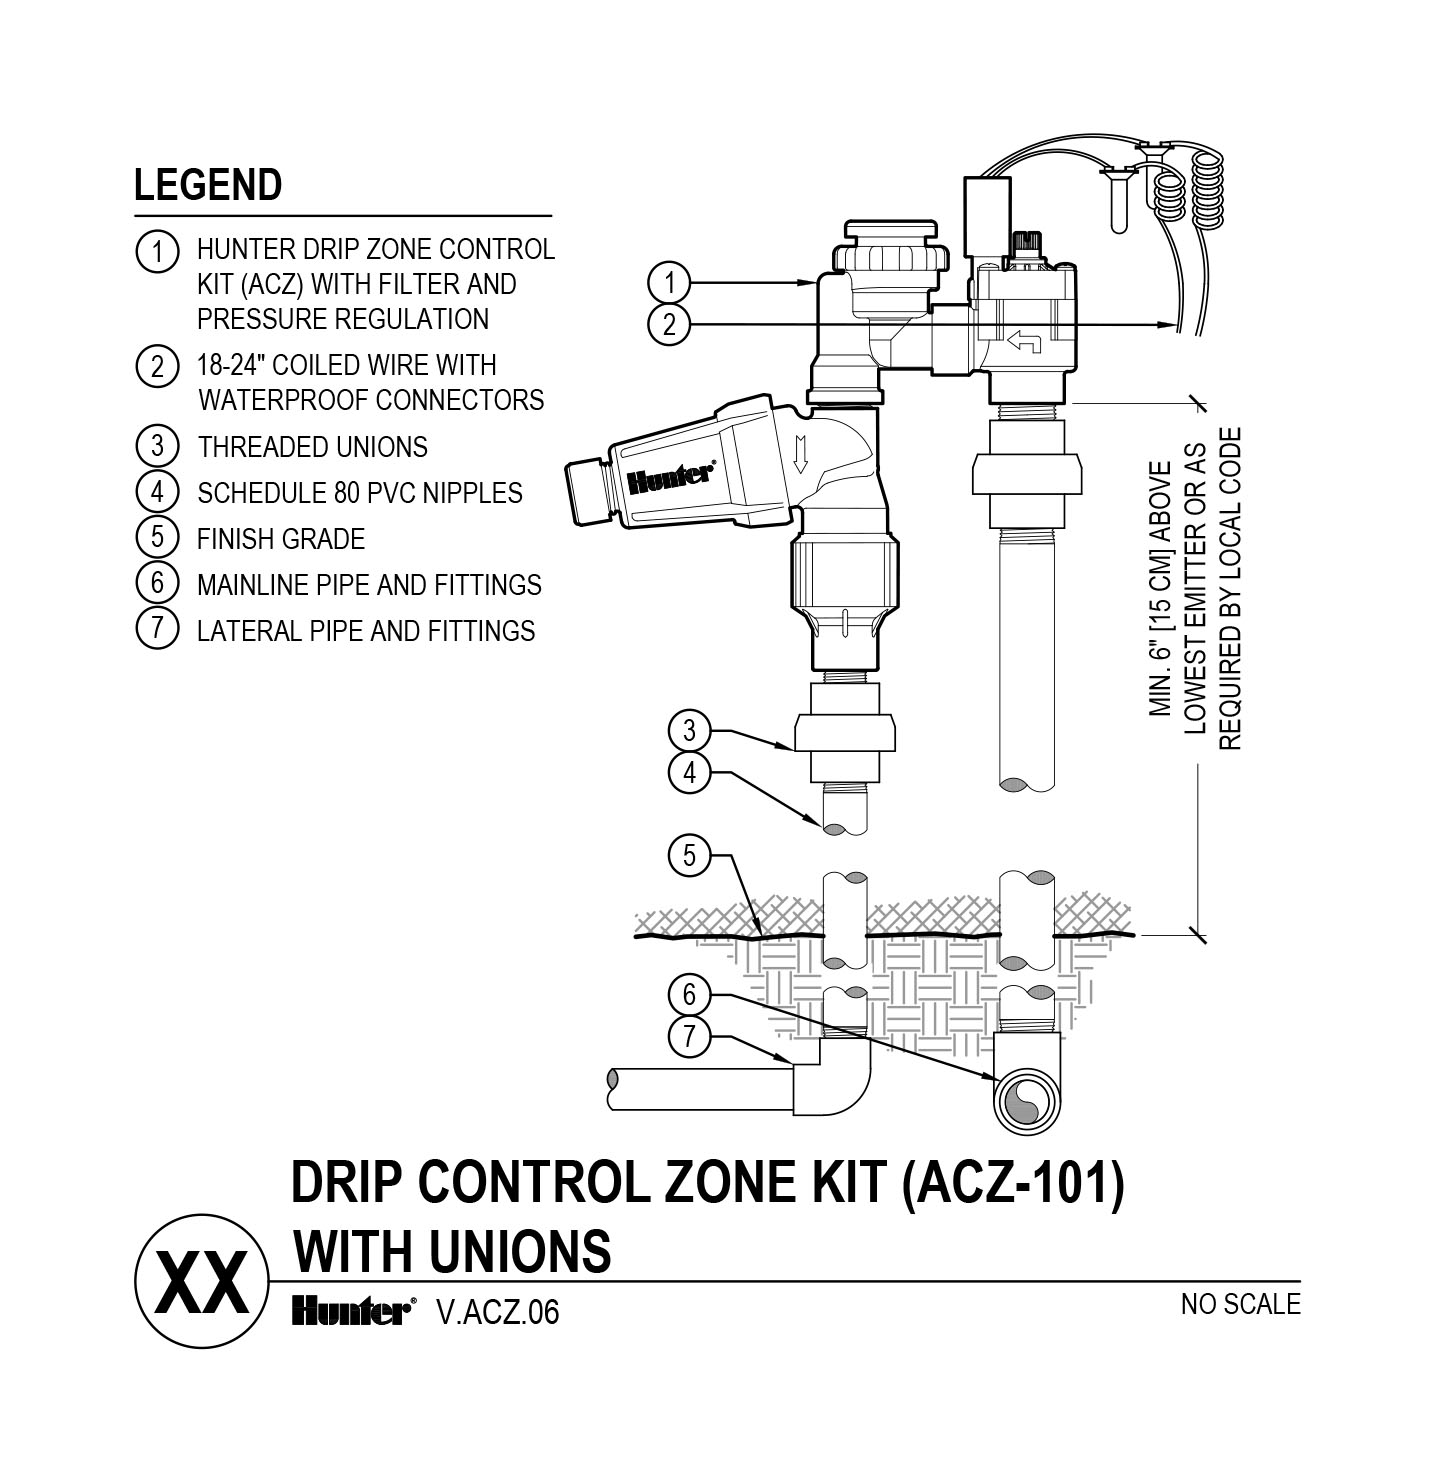 Drip Control Zone Kits | Hunter Industries on drilling diagram, electricians diagram, solar panels diagram, panel wiring icon, rslogix diagram, troubleshooting diagram, assembly diagram, installation diagram, plc diagram, instrumentation diagram, telecommunications diagram, grounding diagram,